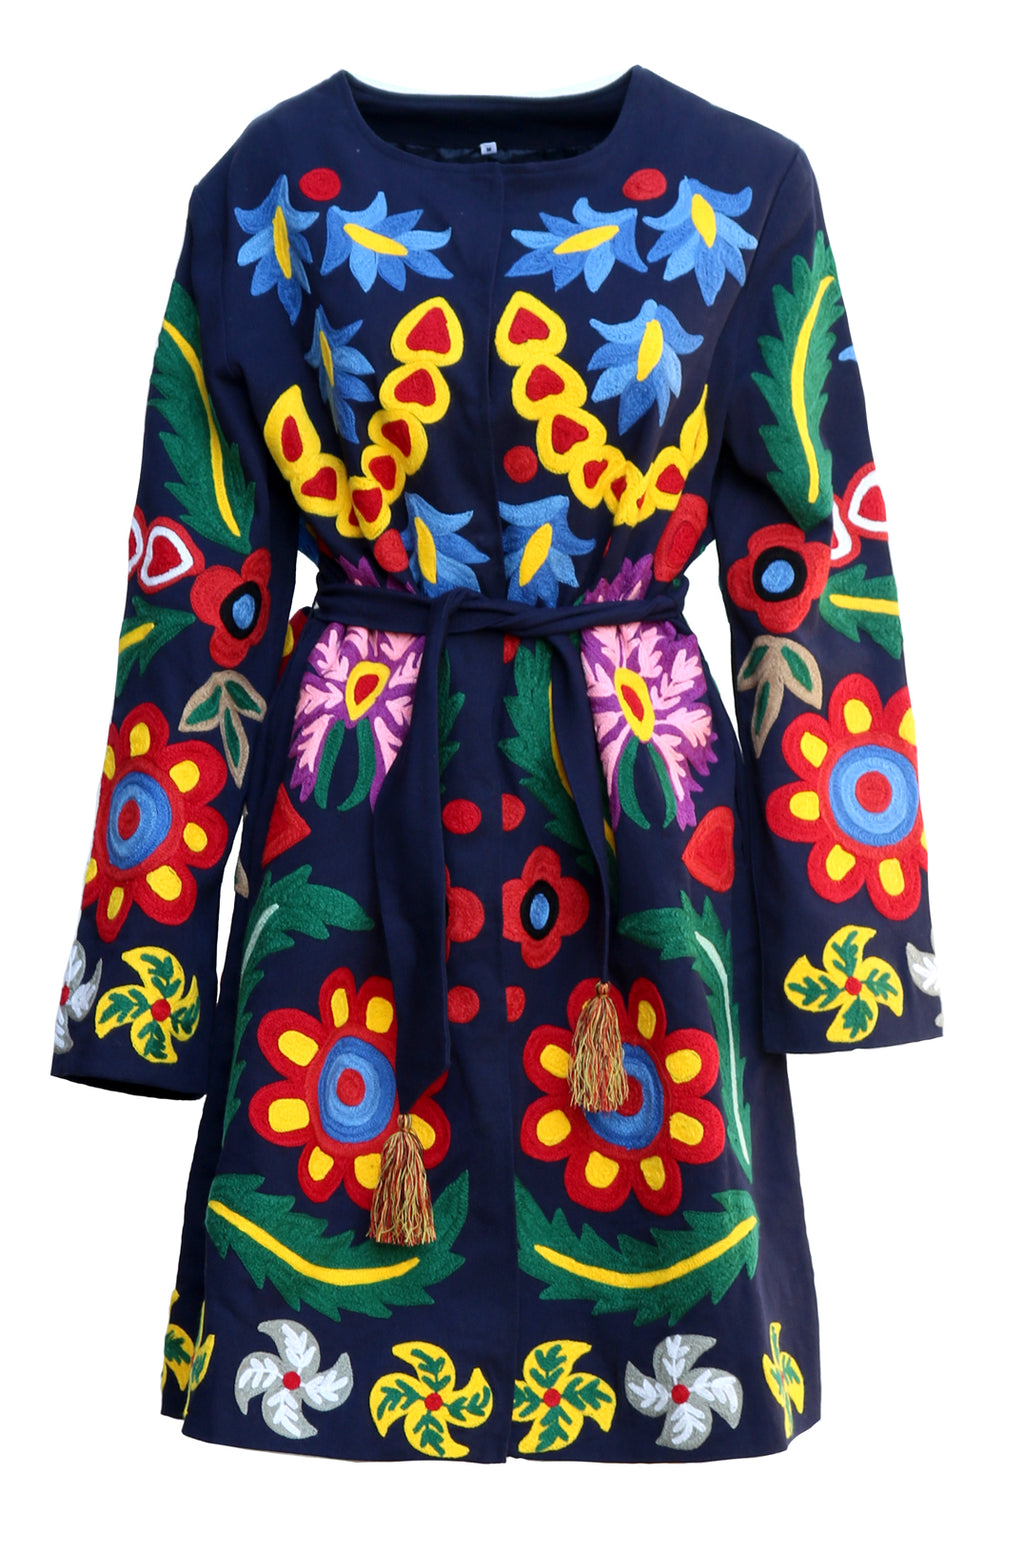 Fanm Mon Vyshyvanka Navy Linen Jacket HAND Embroidered MULTI COLOR Floral